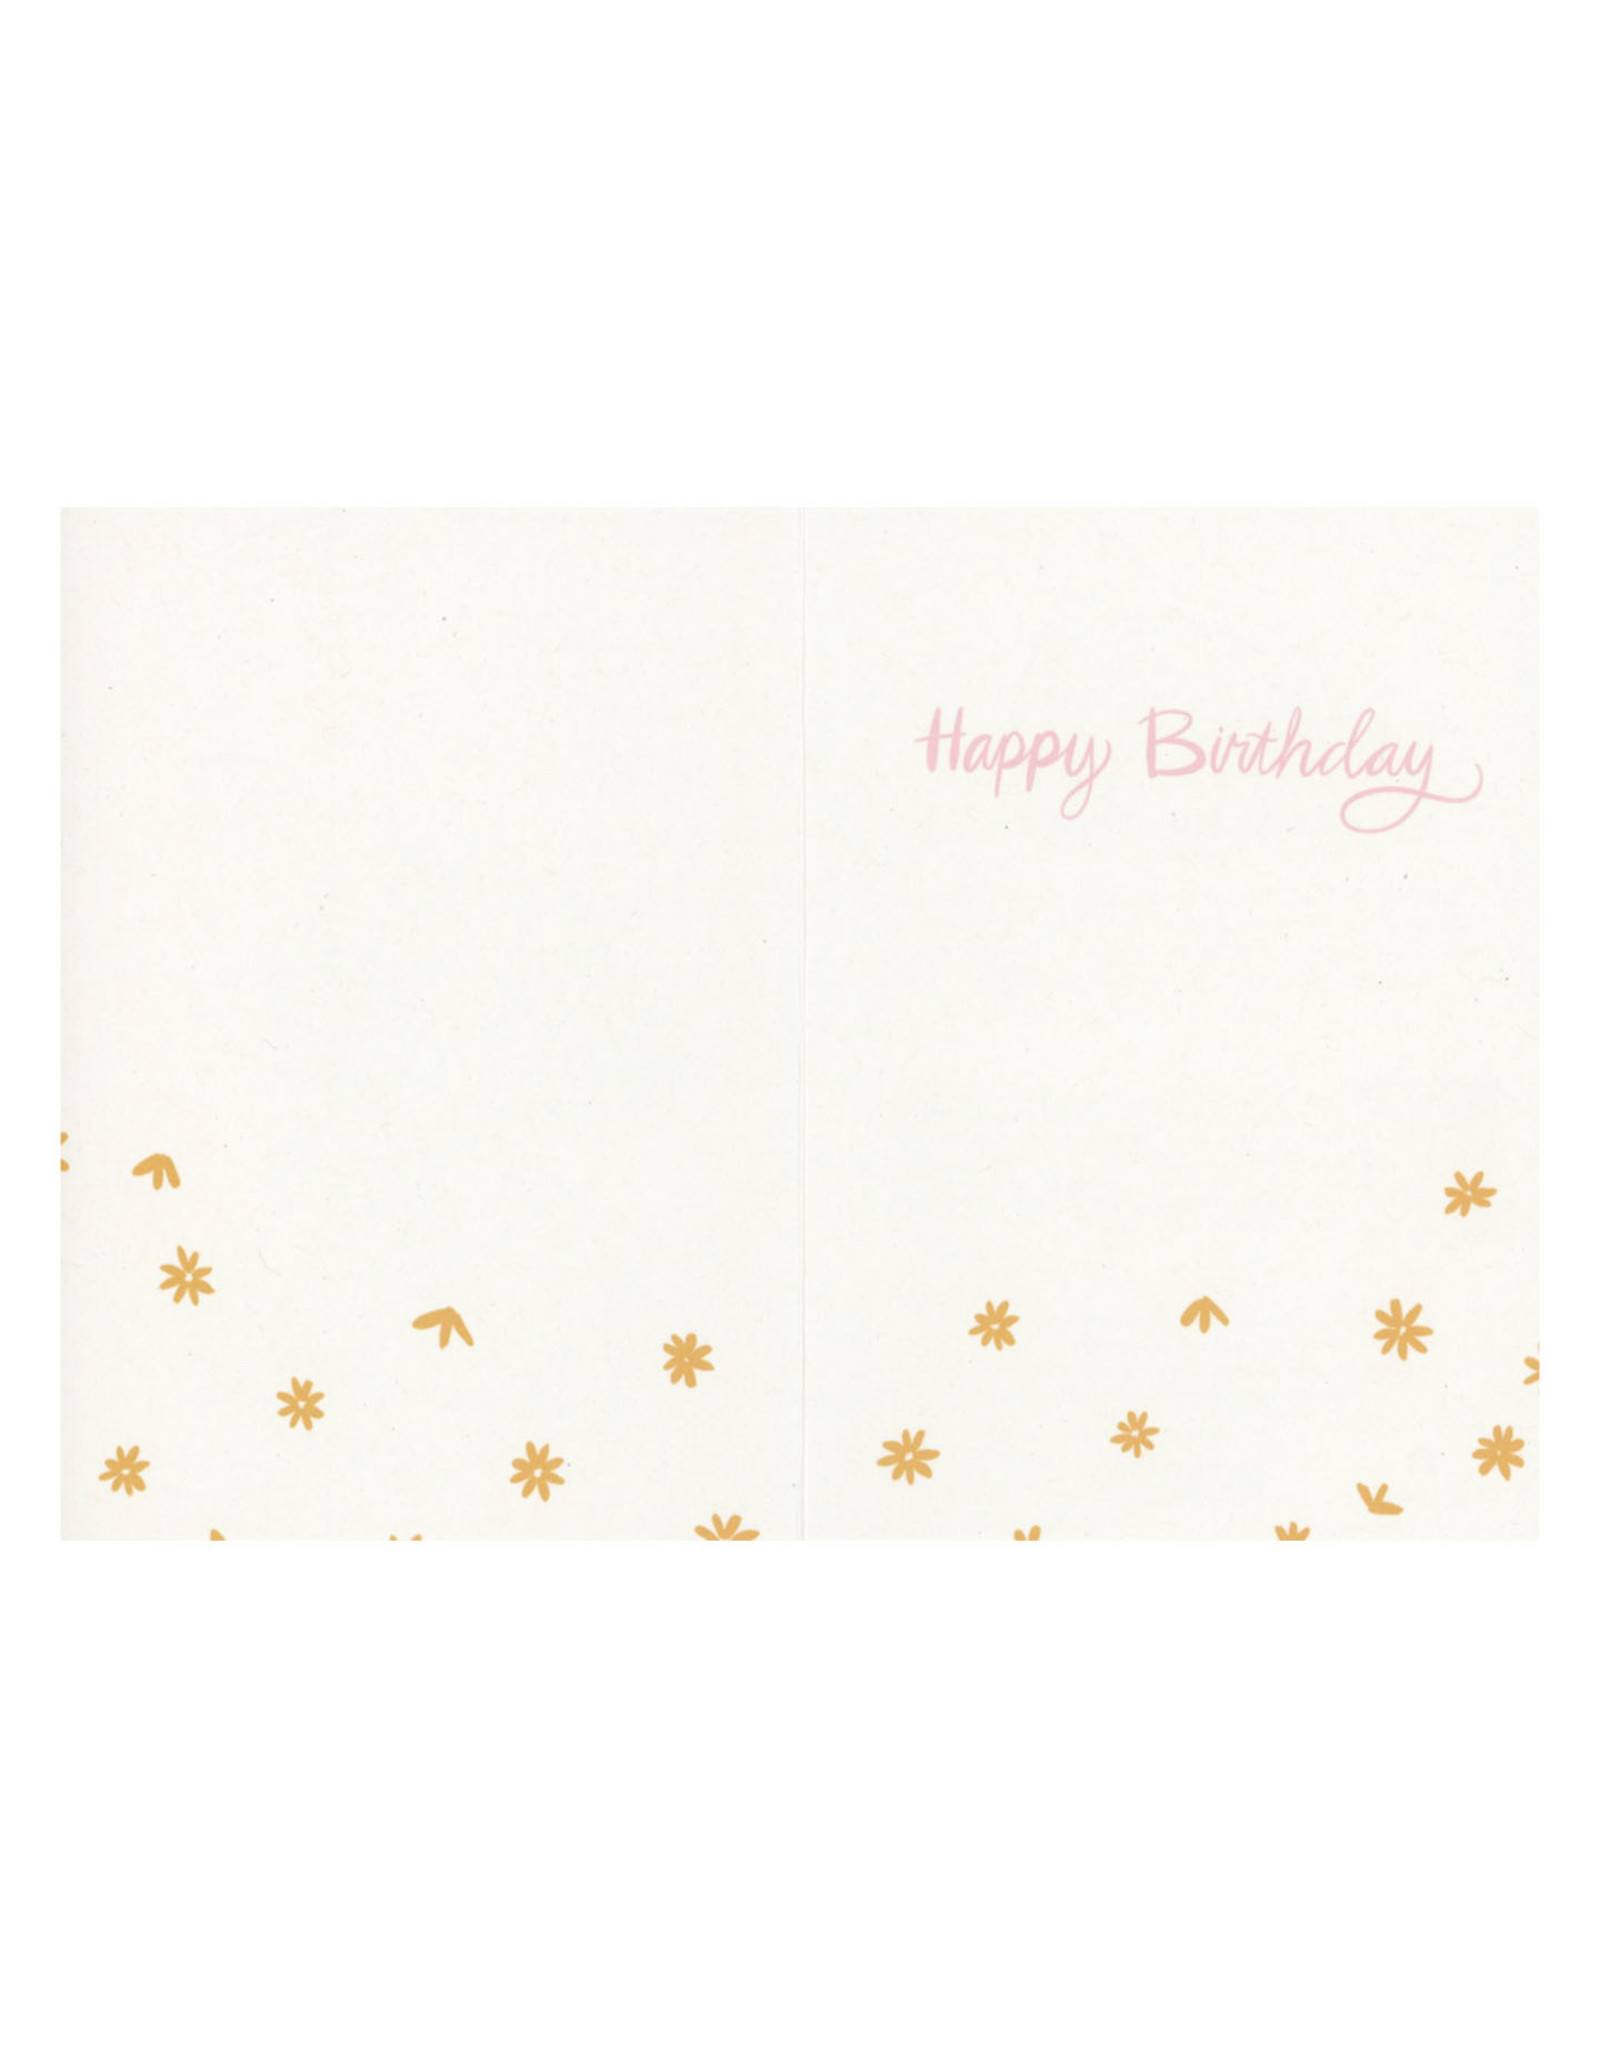 Courage to Bloom Greeting Card